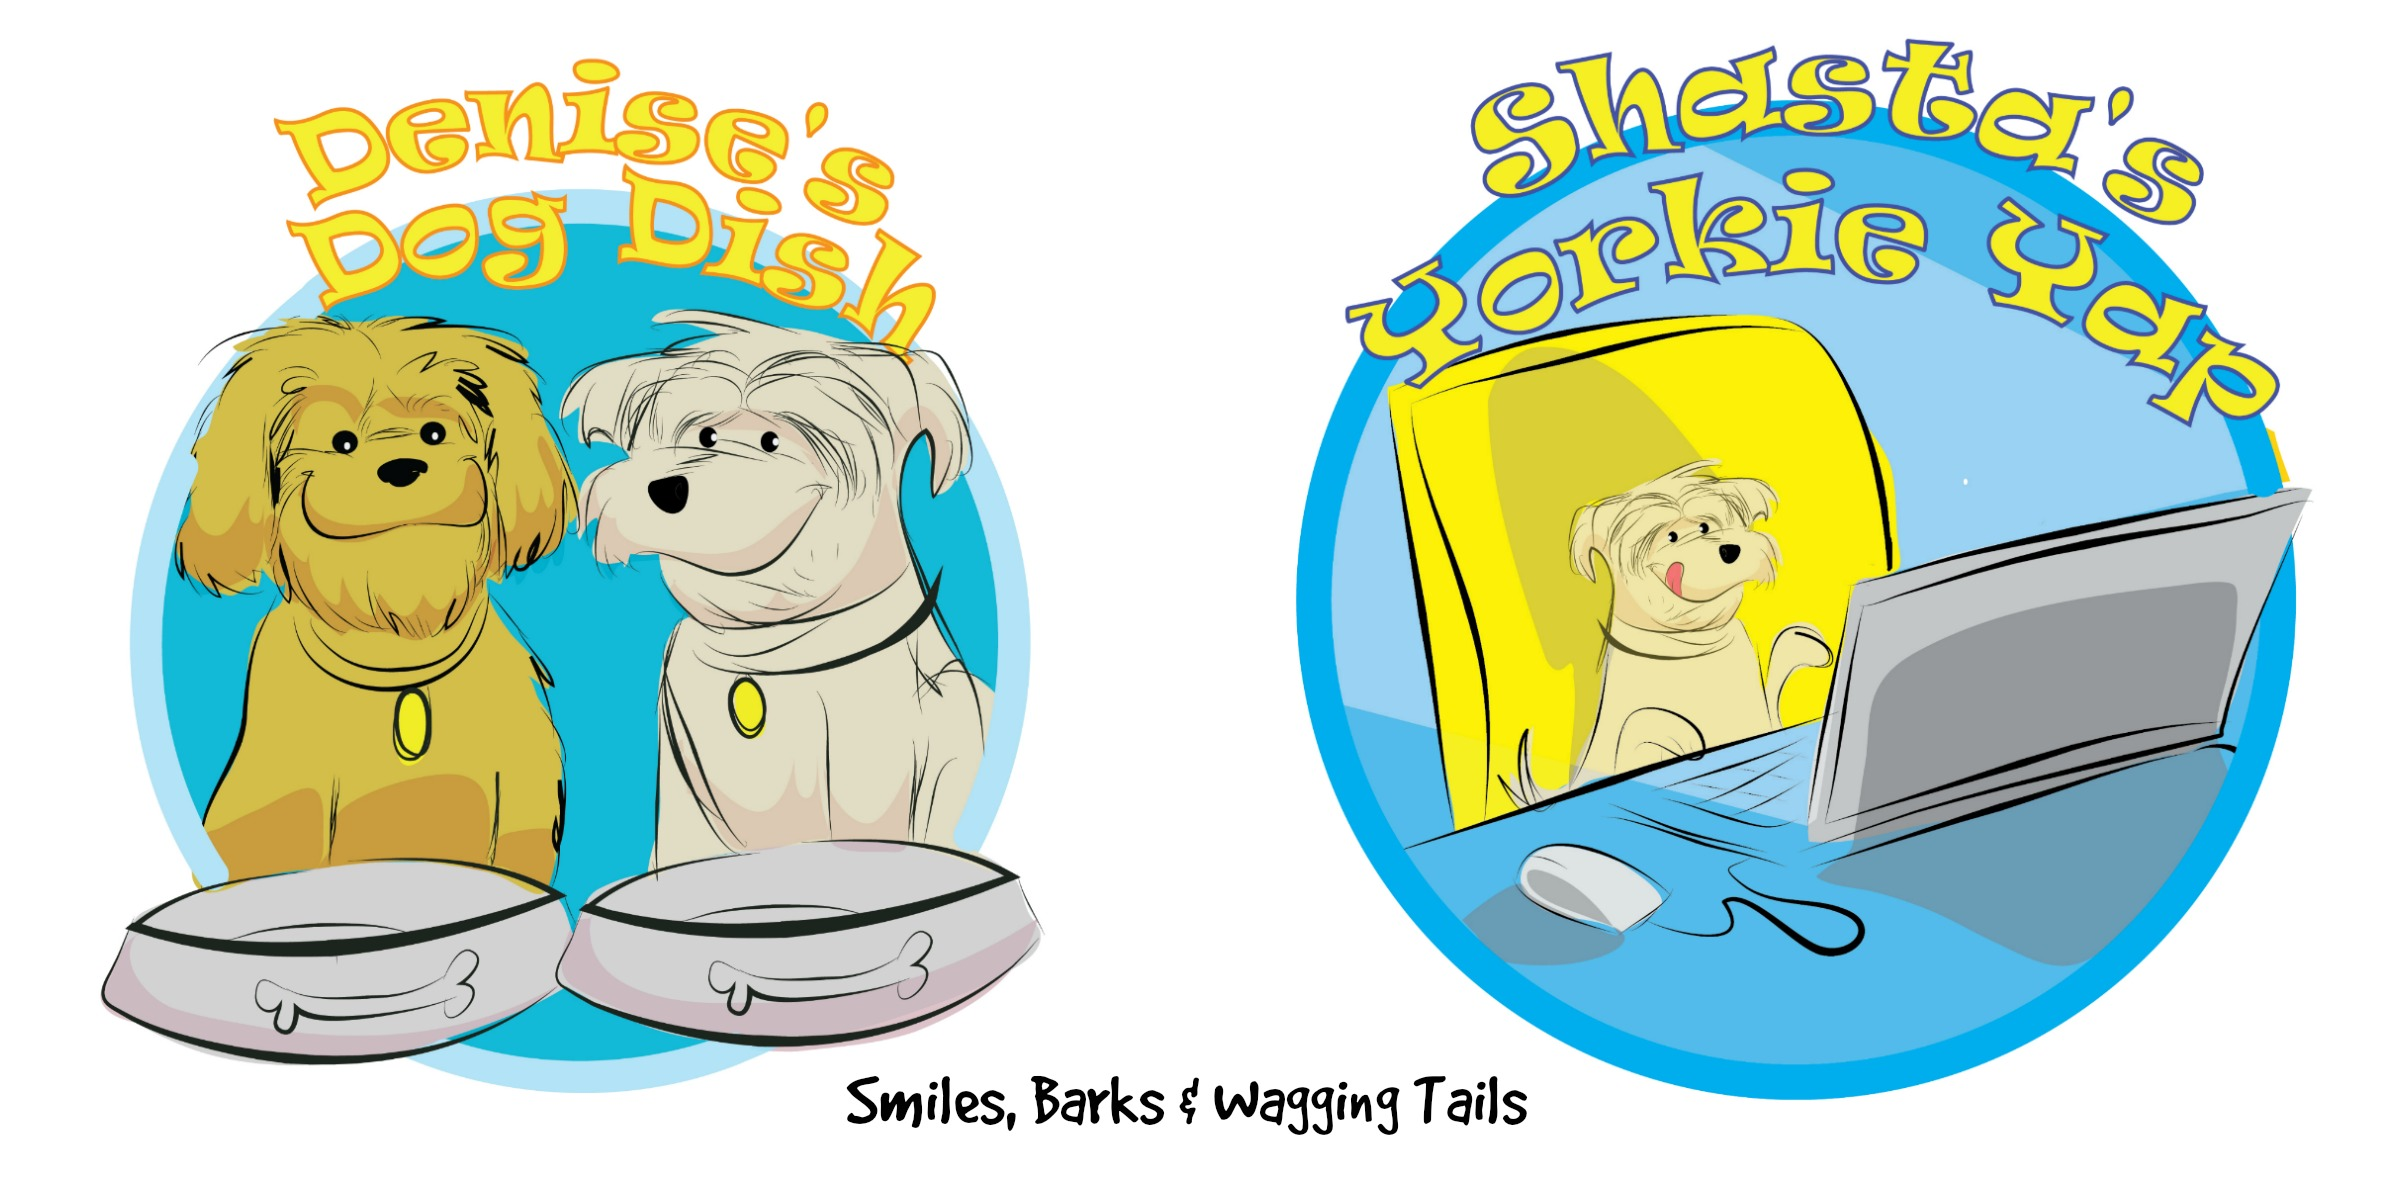 Denise's Dog Dish-Smiles, Barks and Wagging Tails